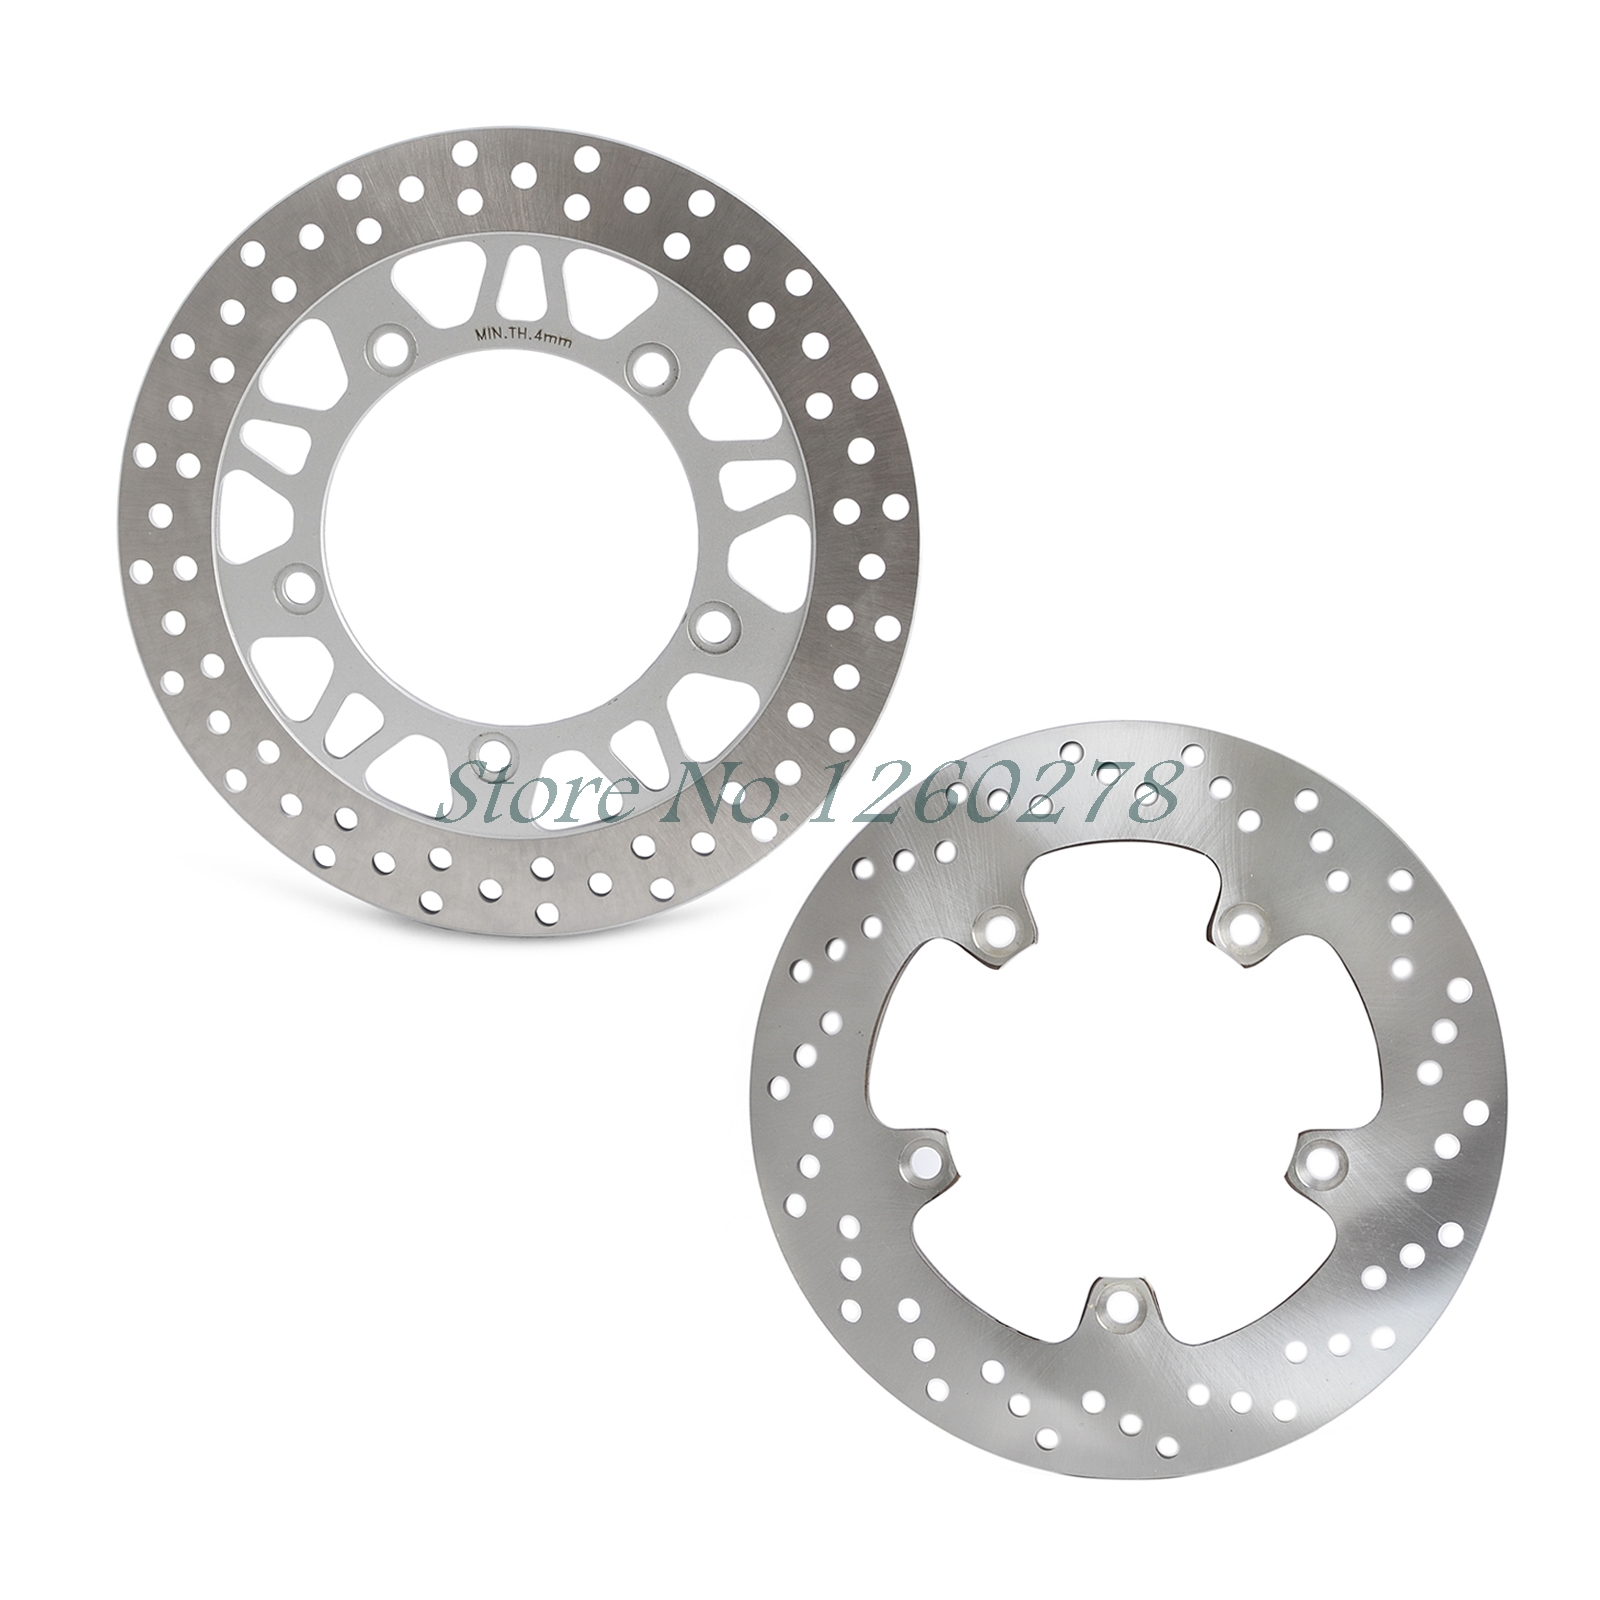 New Motorcycle Front &amp; Rear Brake Disc Rotor For Suzuki AN650 2004 2005 2006 2007 2008 2009 2010 2011 2012 AN 650<br>